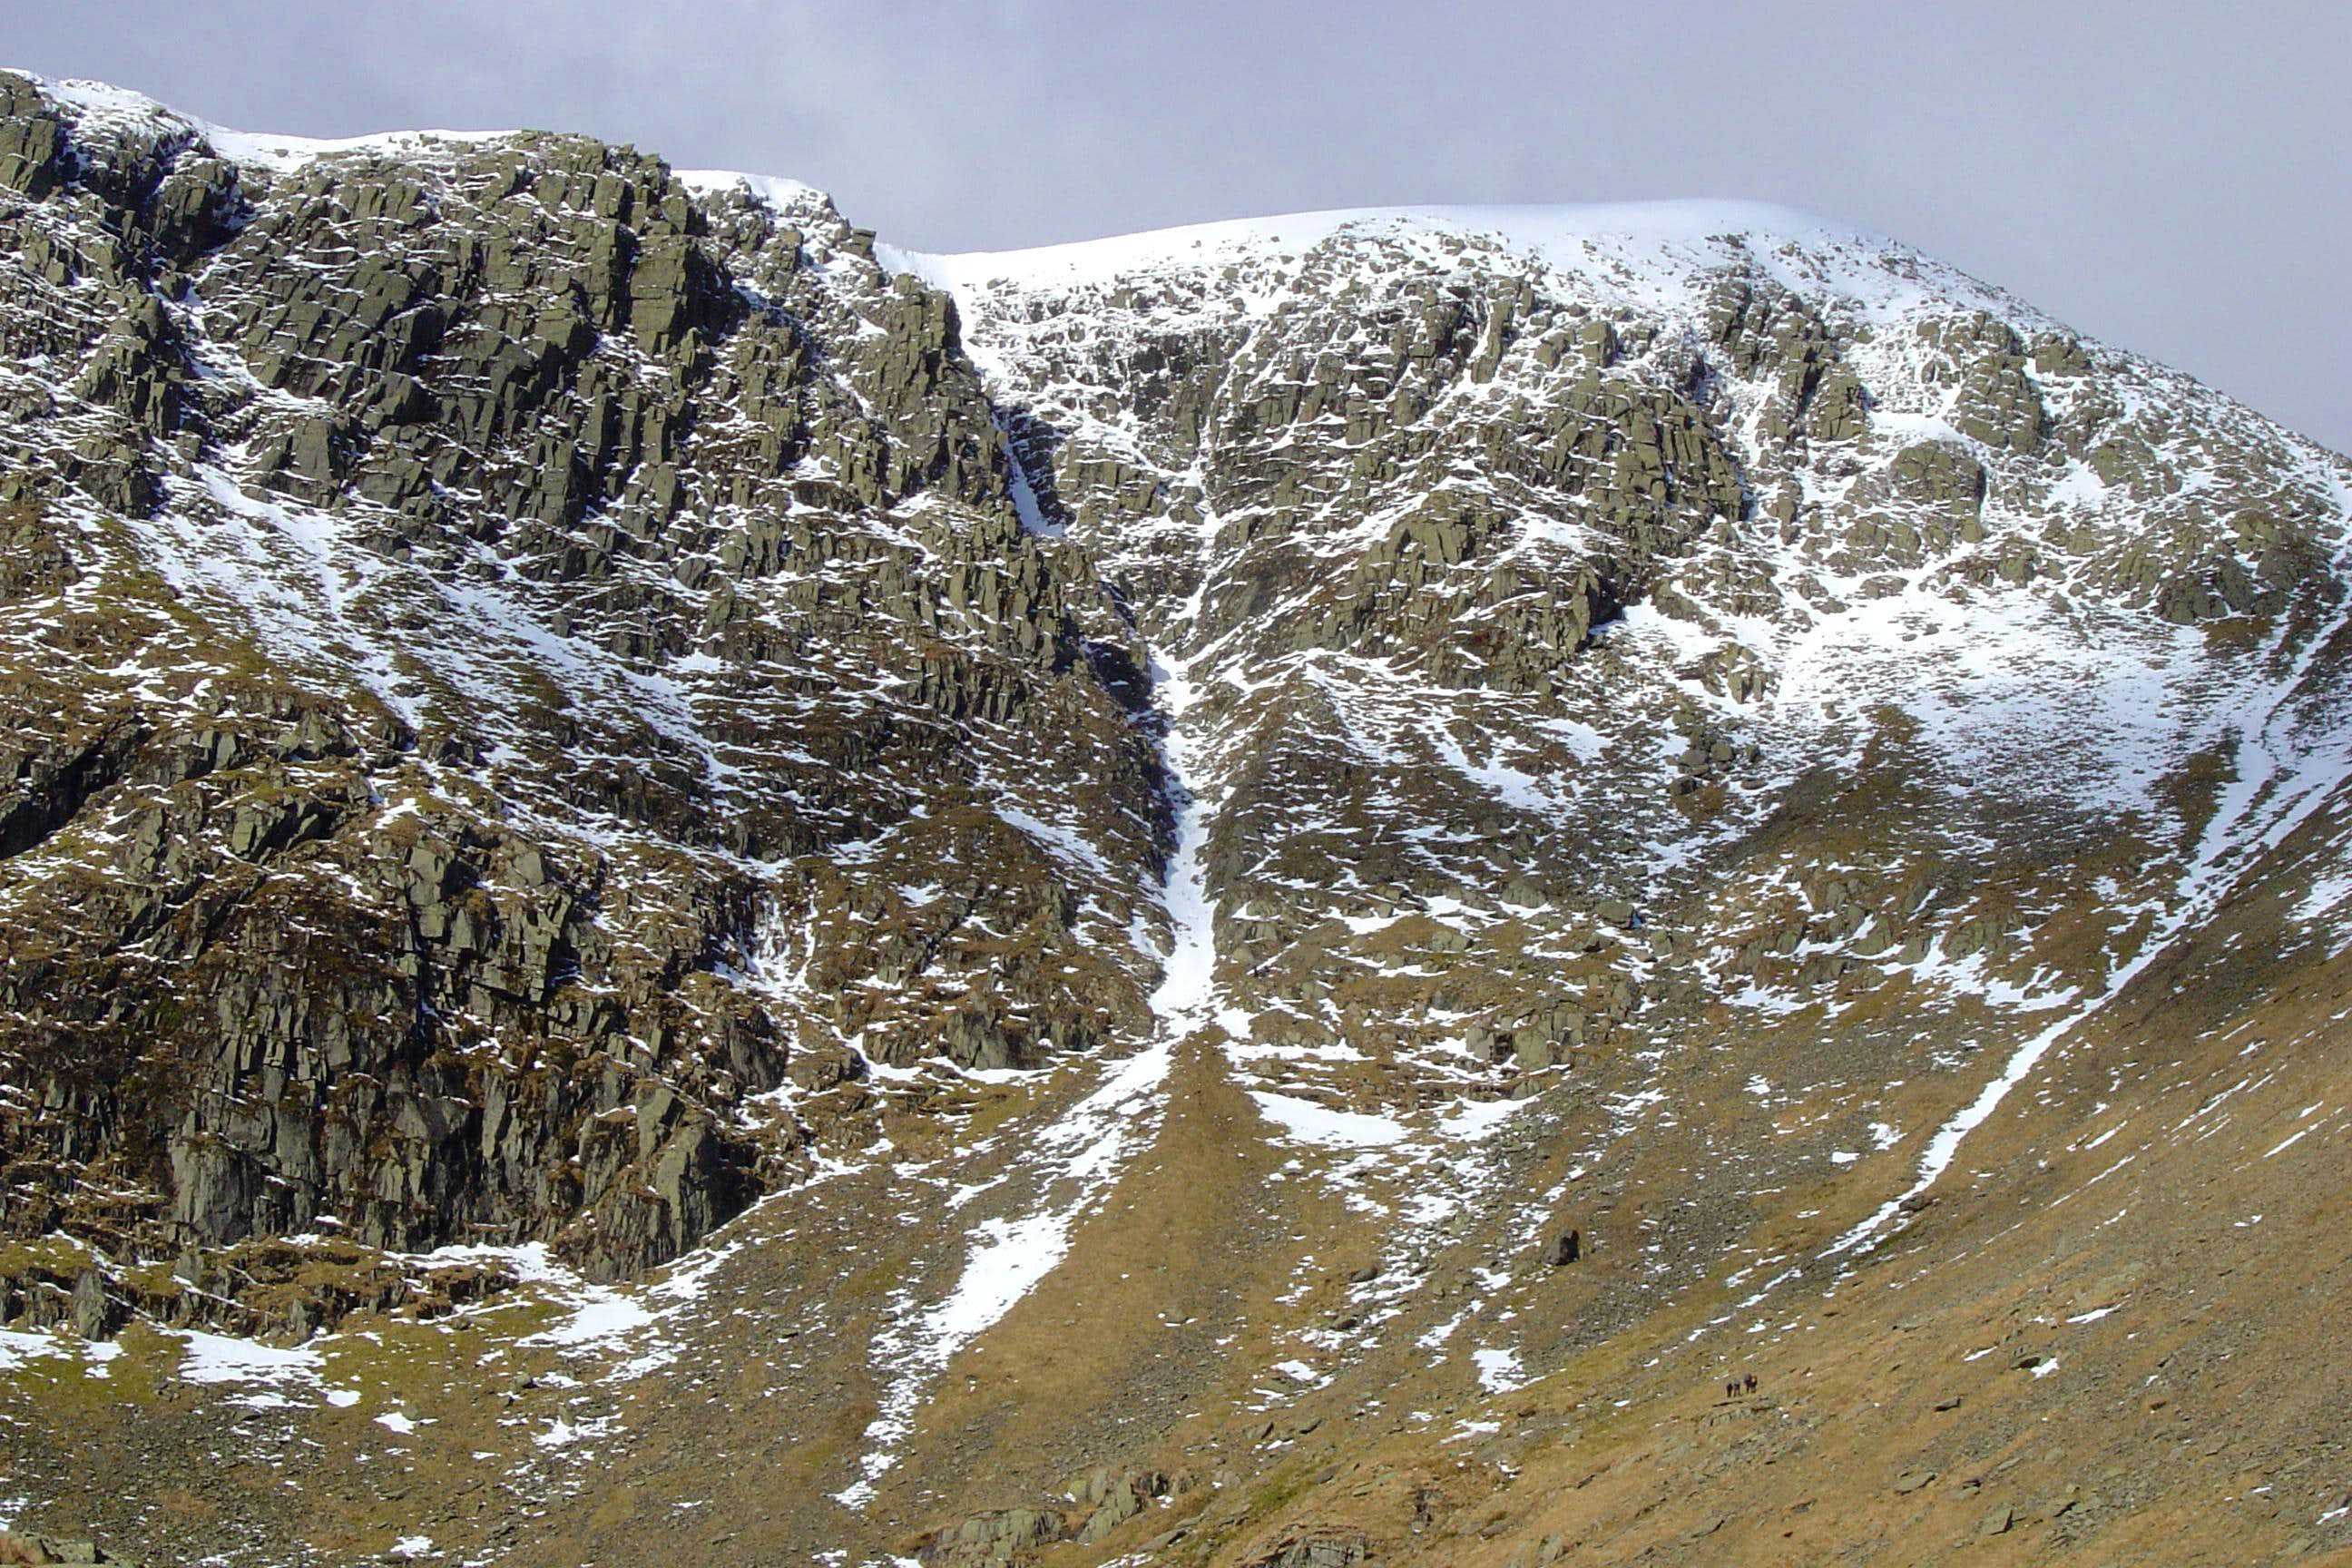 Swallow/Nethermost Gully,Nethermost Cove, Helvellyn (Winter Climb)